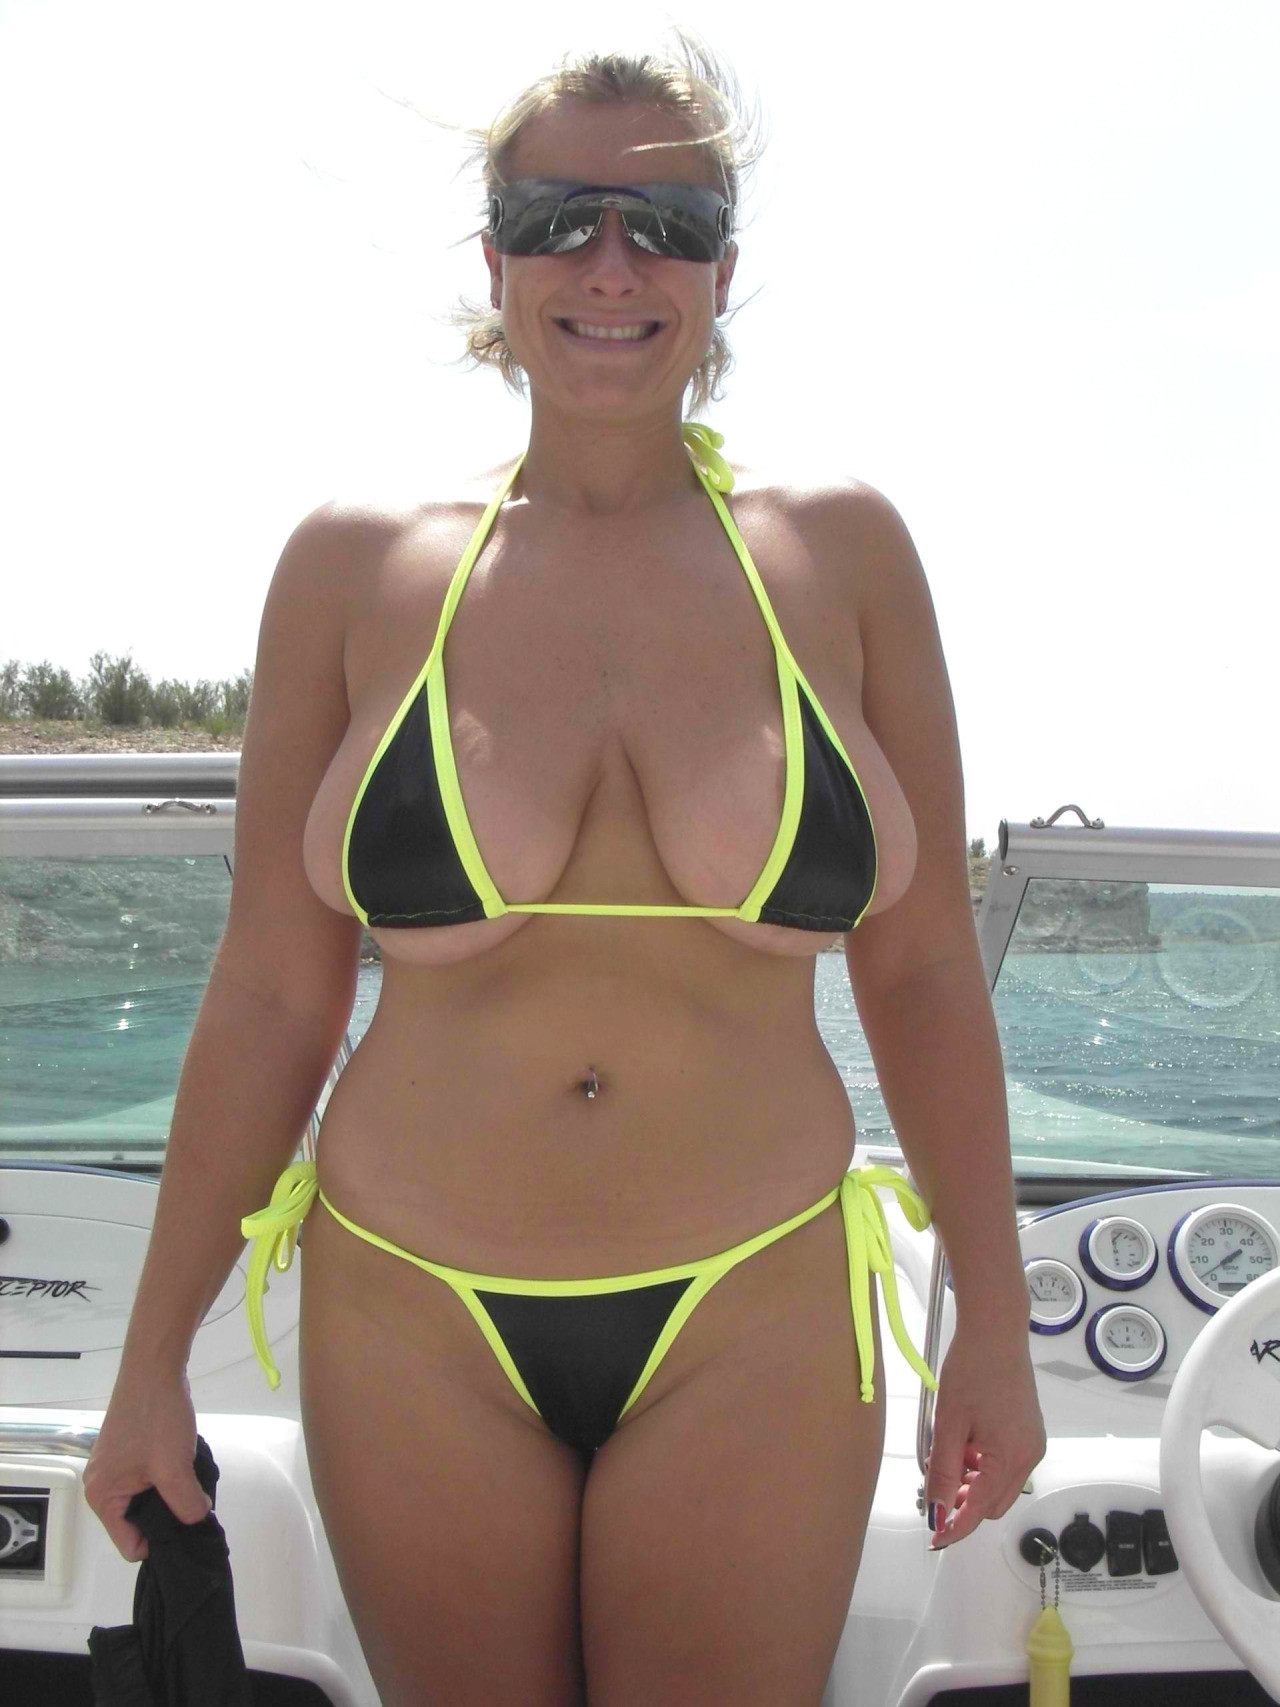 thicc milf spilling out of her top